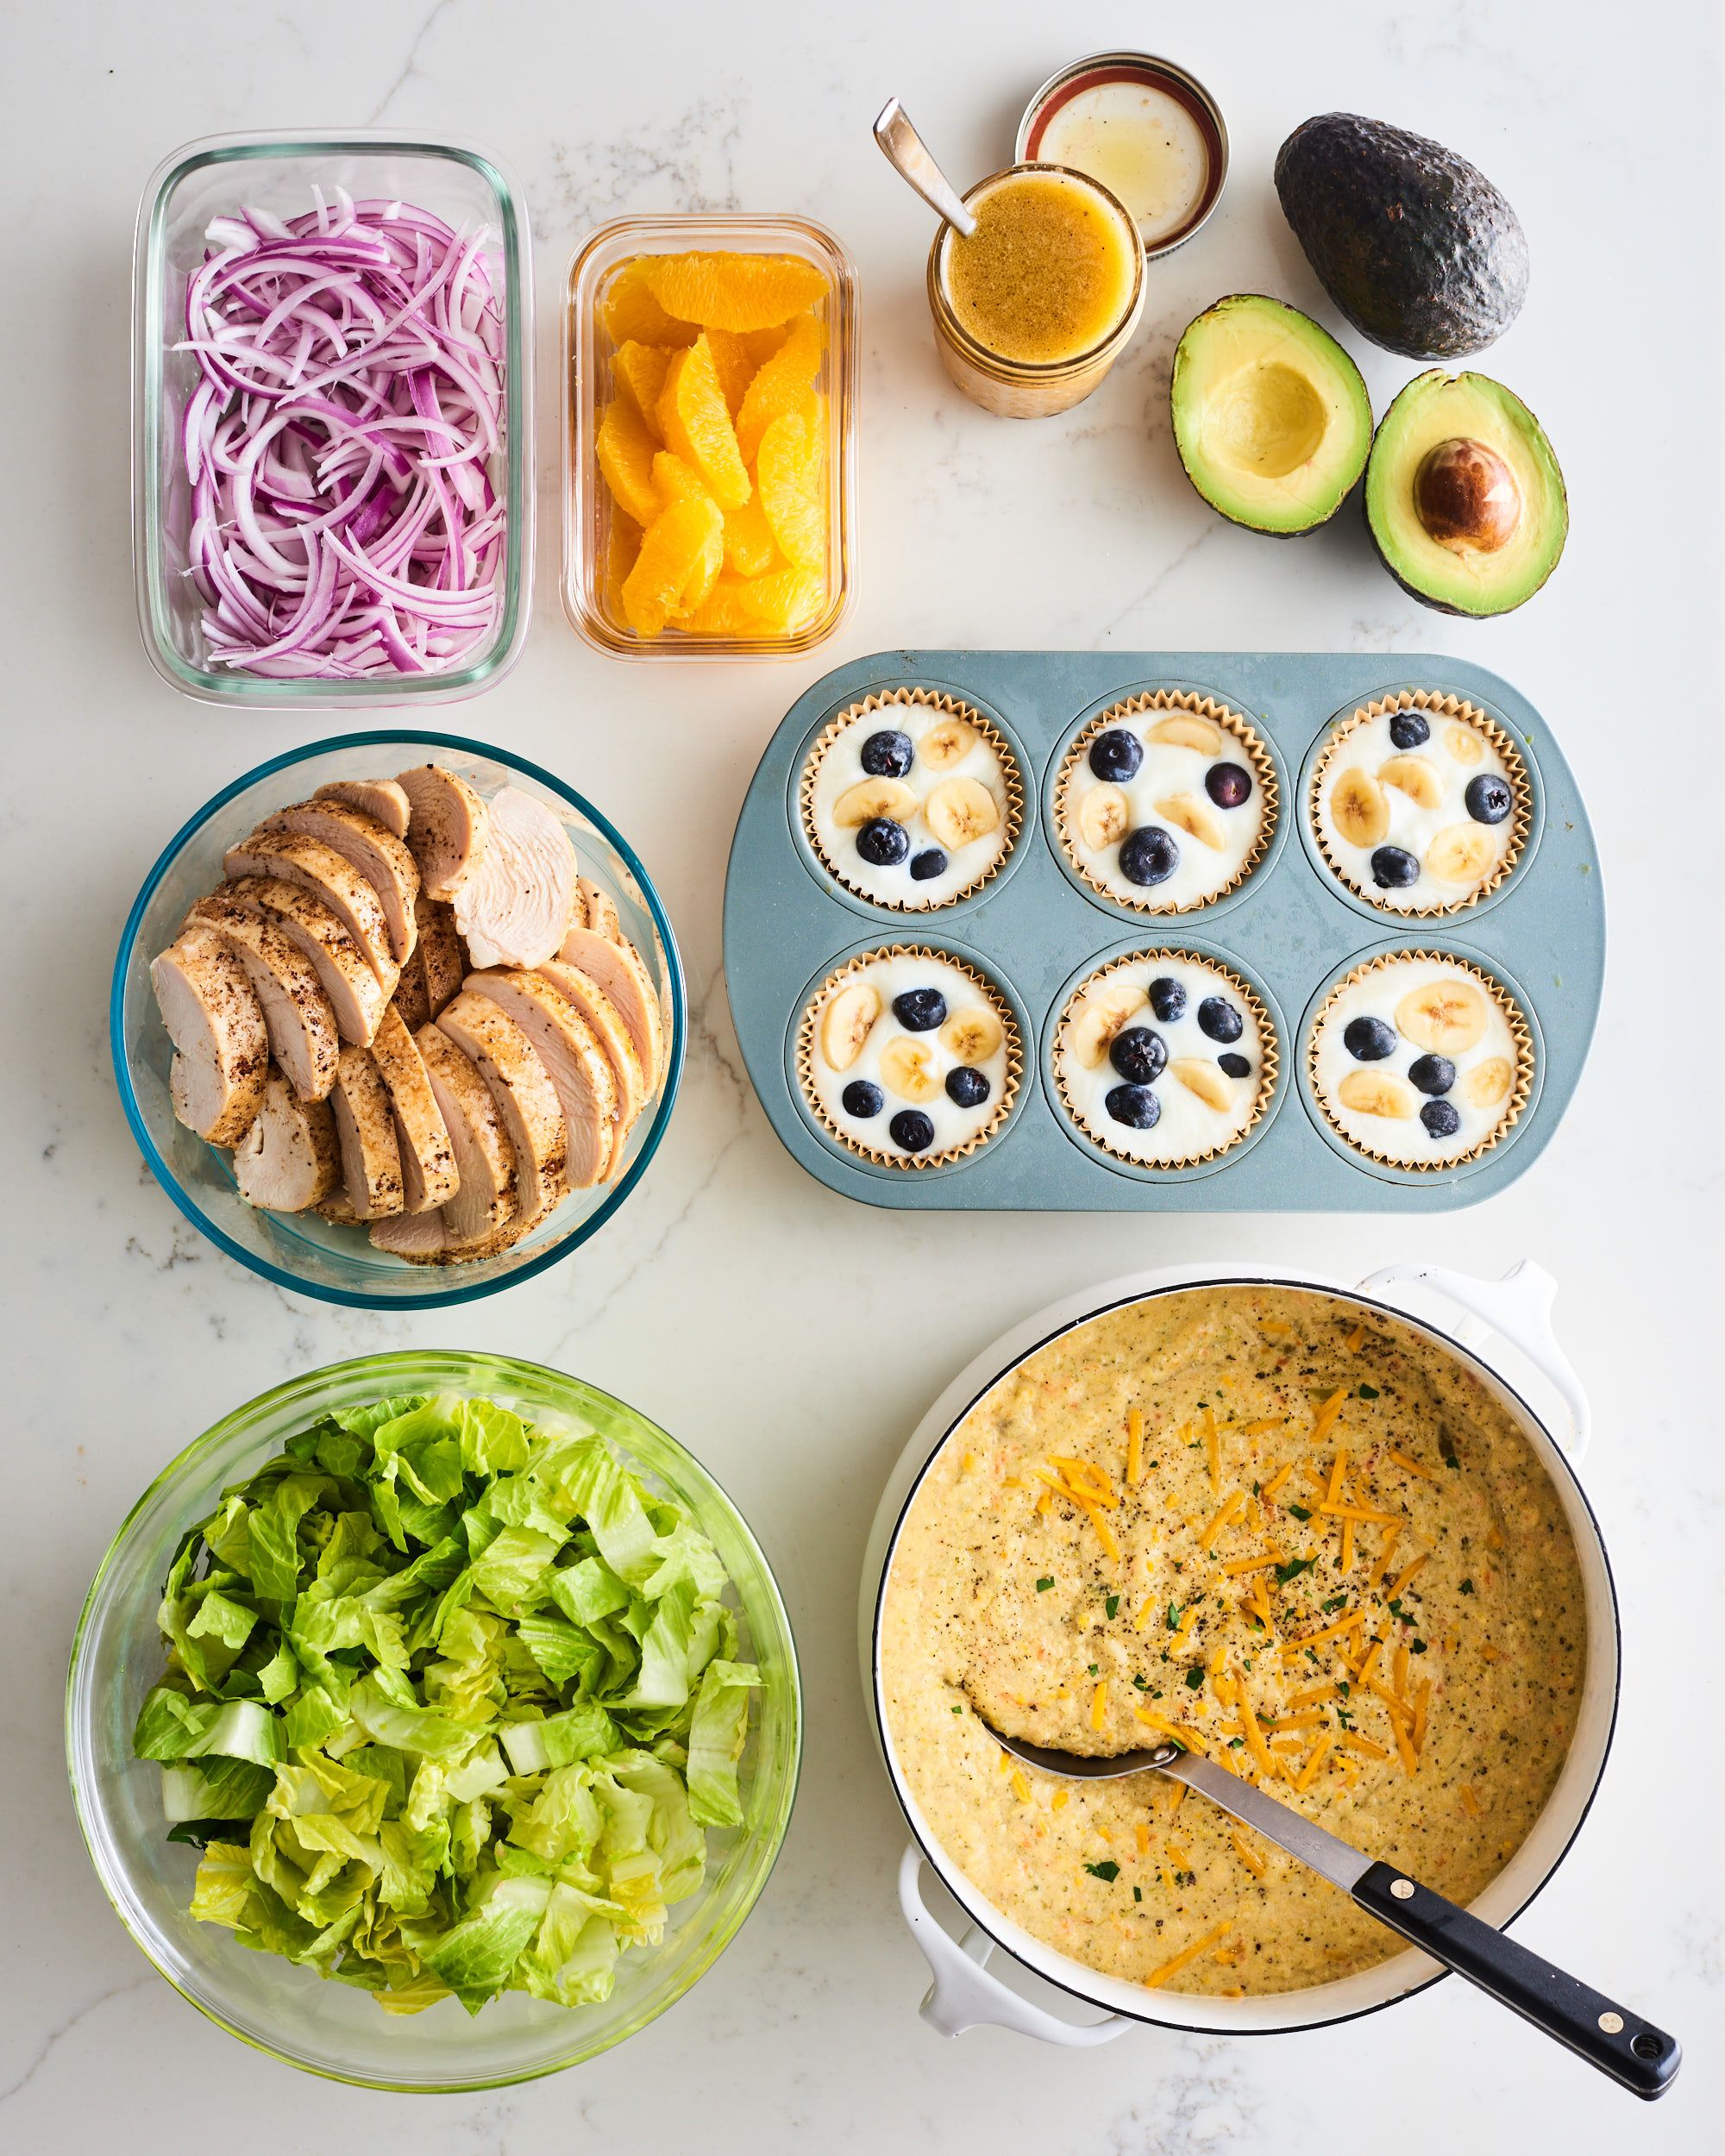 Costco Meal Prep for 1 Week of Costco Meals in 2 Hours | Kitchn